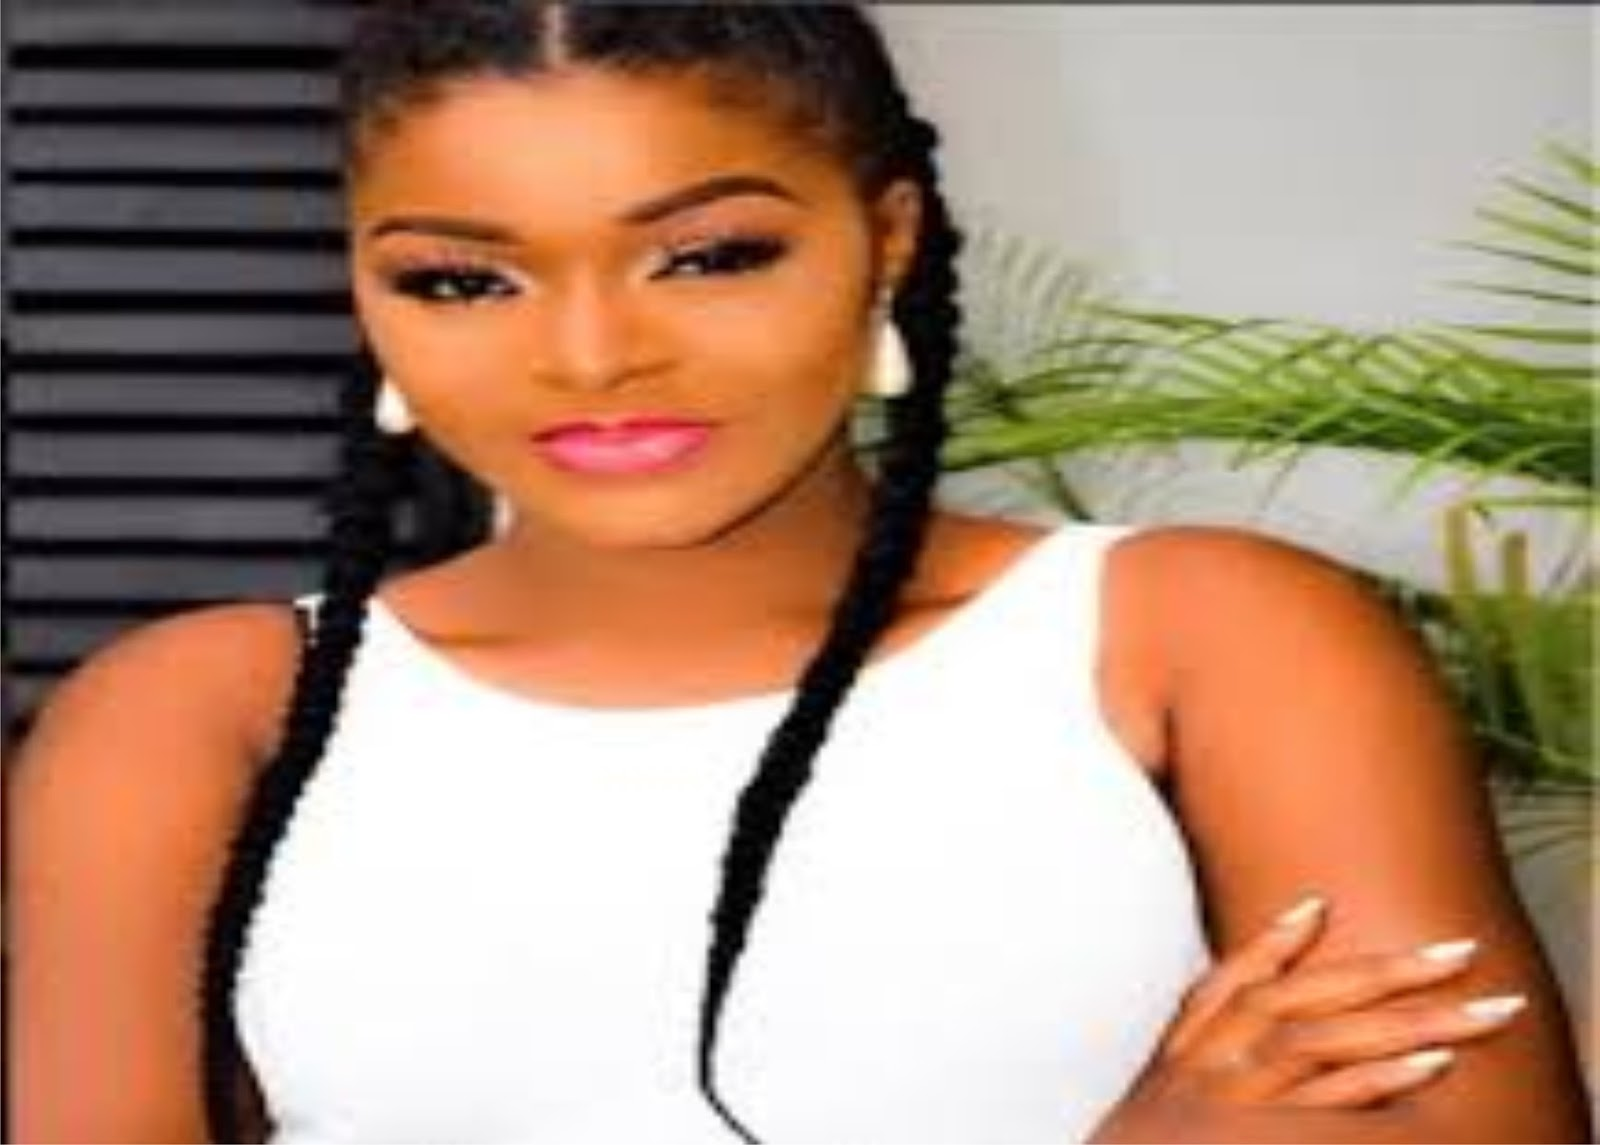 Top 10 beautiful celebrities in nigeria you need to know kelvingolden popular nollywood actress known as chacha eke who is from ebonyi state from south eastern nigeria who also attended her basic education at esut nursery publicscrutiny Choice Image